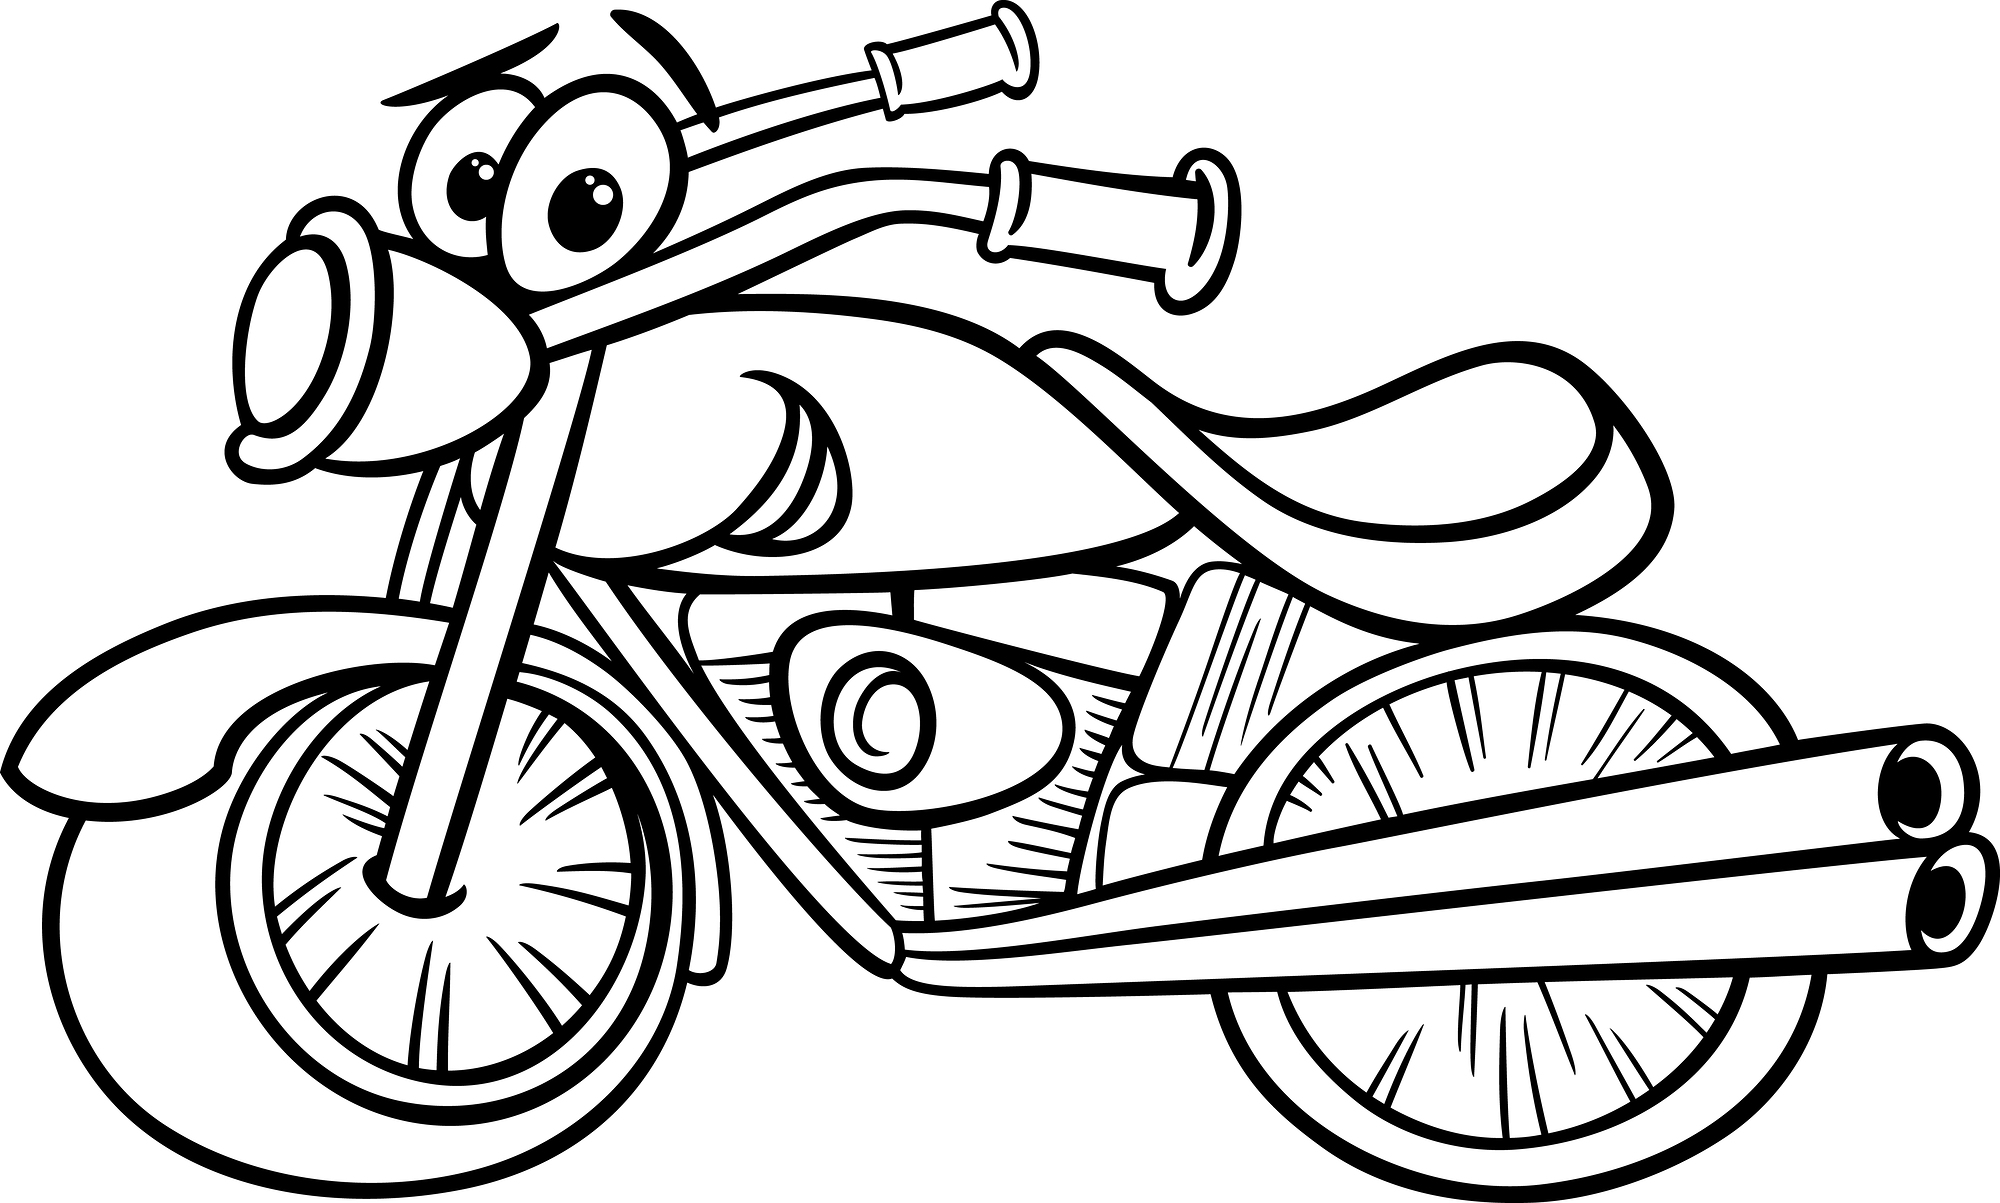 2000x1203 Good Motorcycle Coloring Pages With Additional Coloring Pages